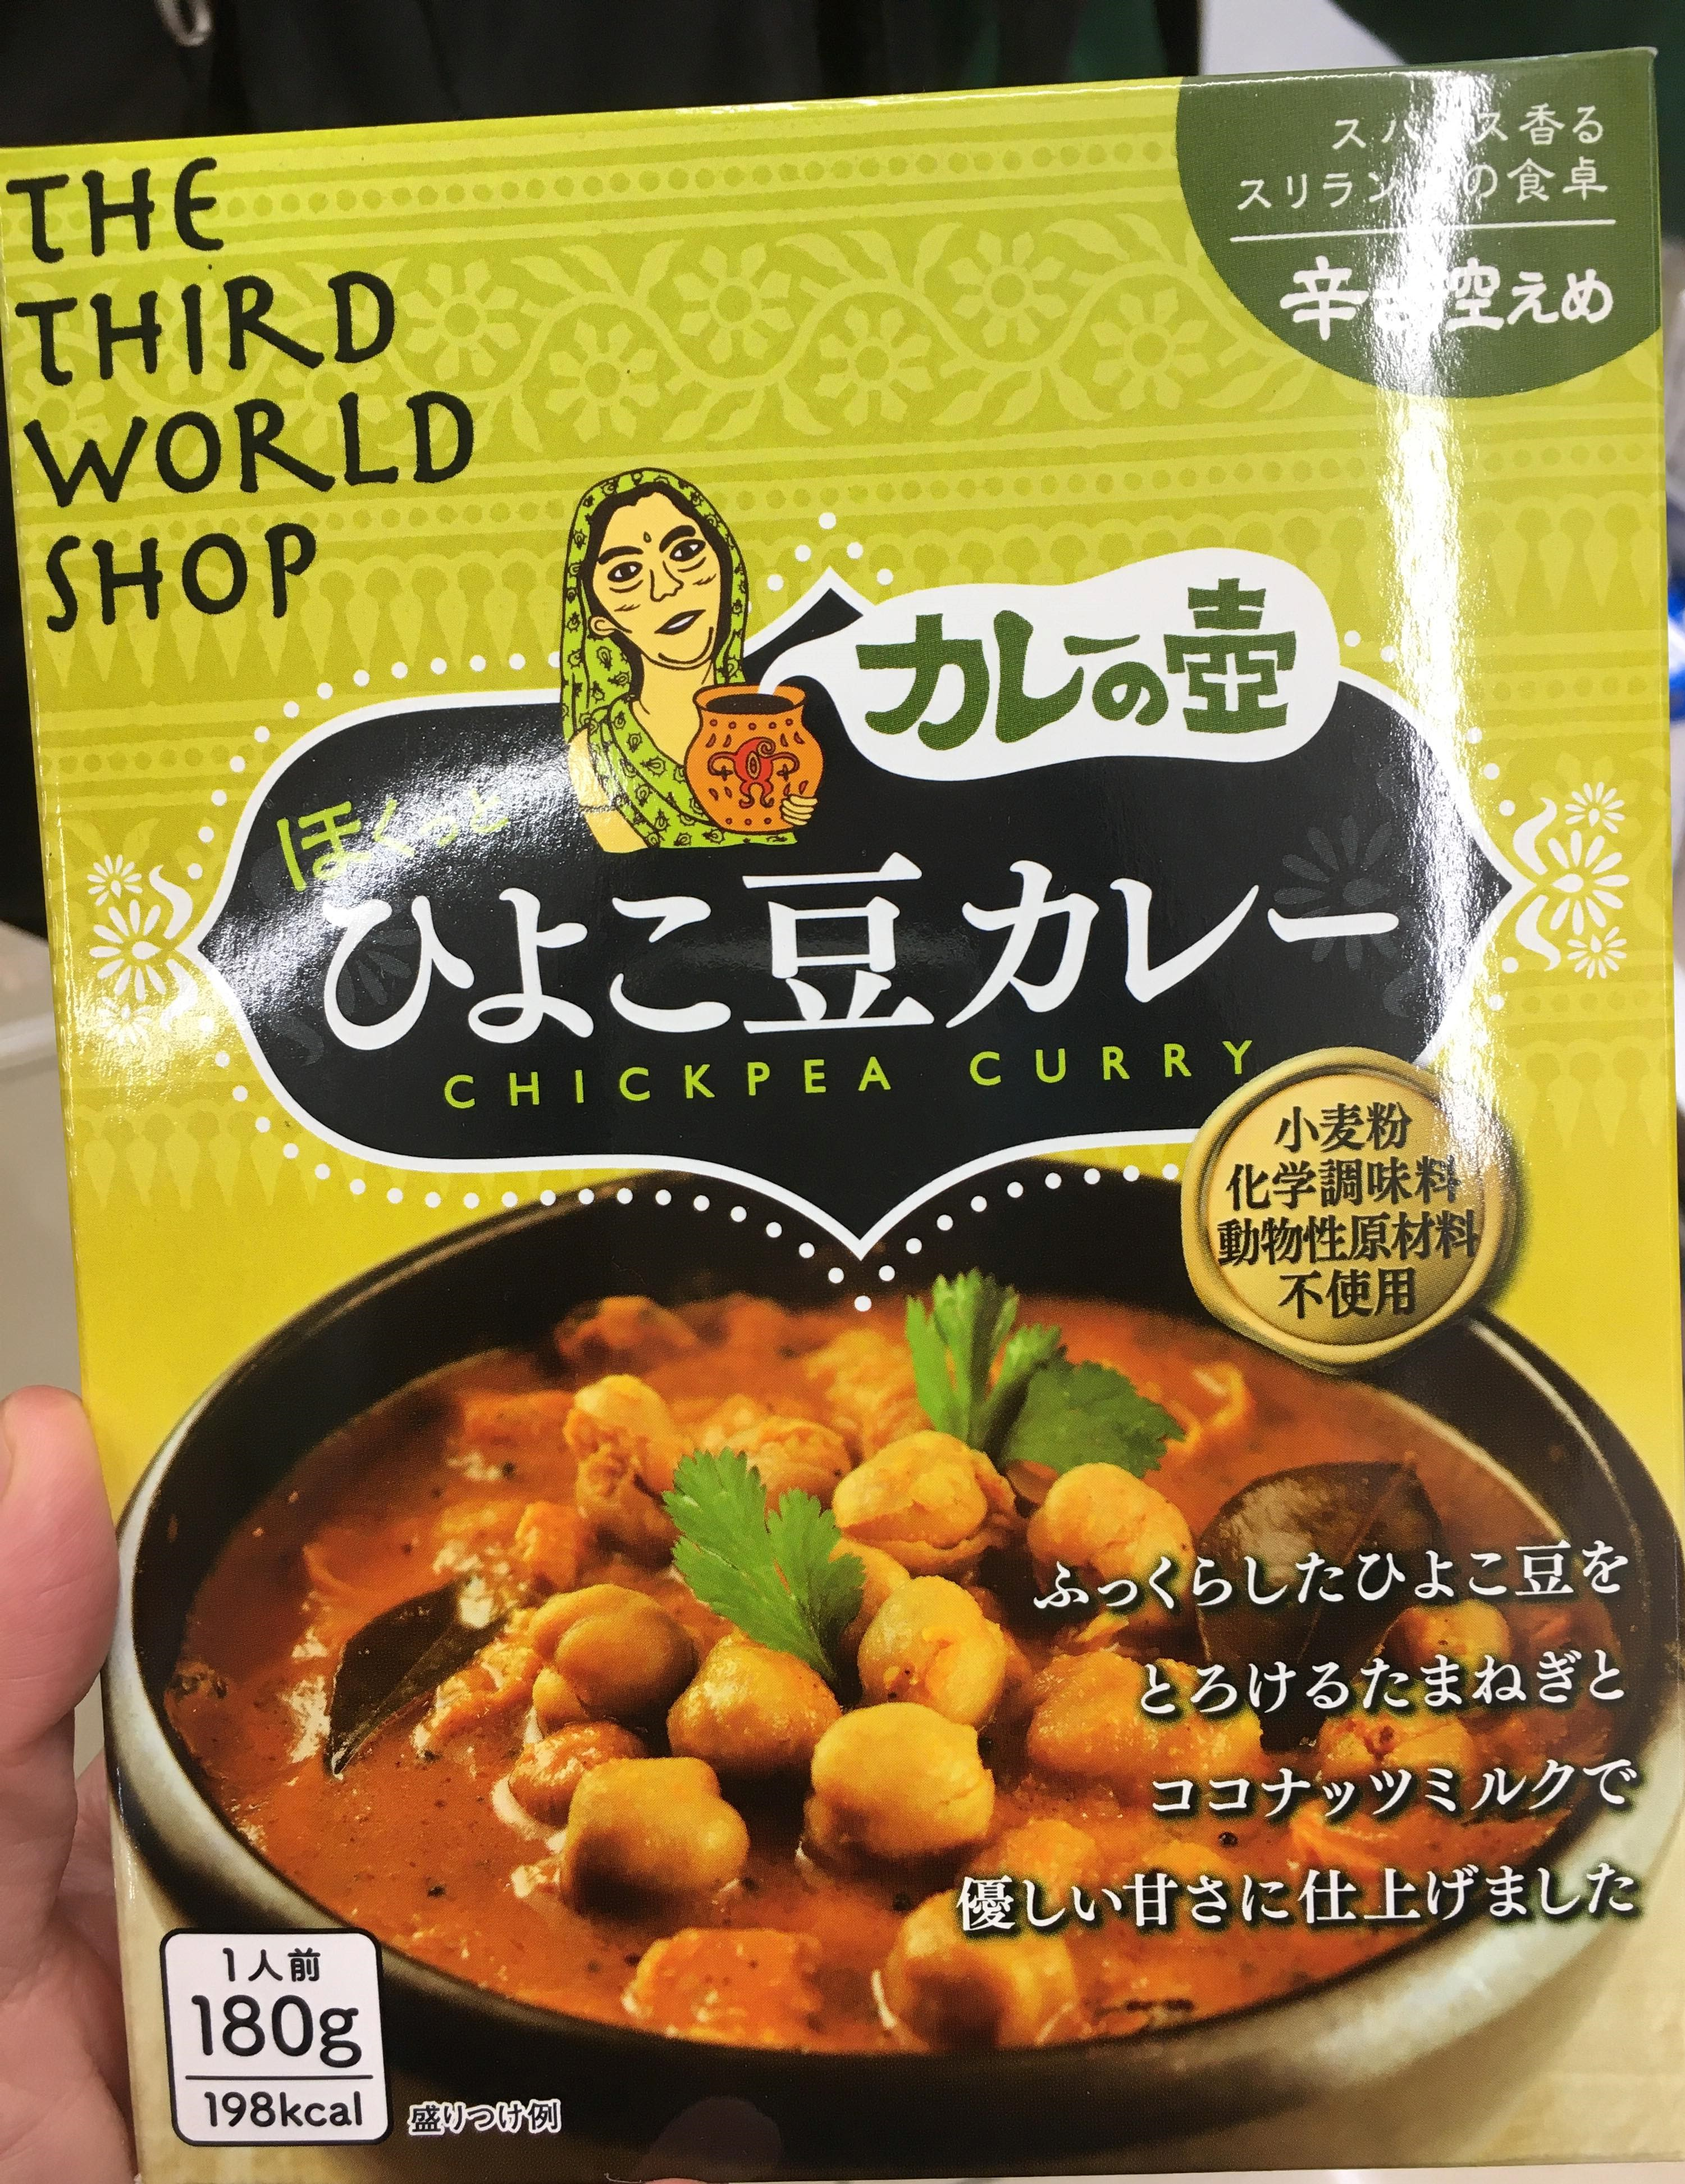 The Third World Shop Chickpea Curry